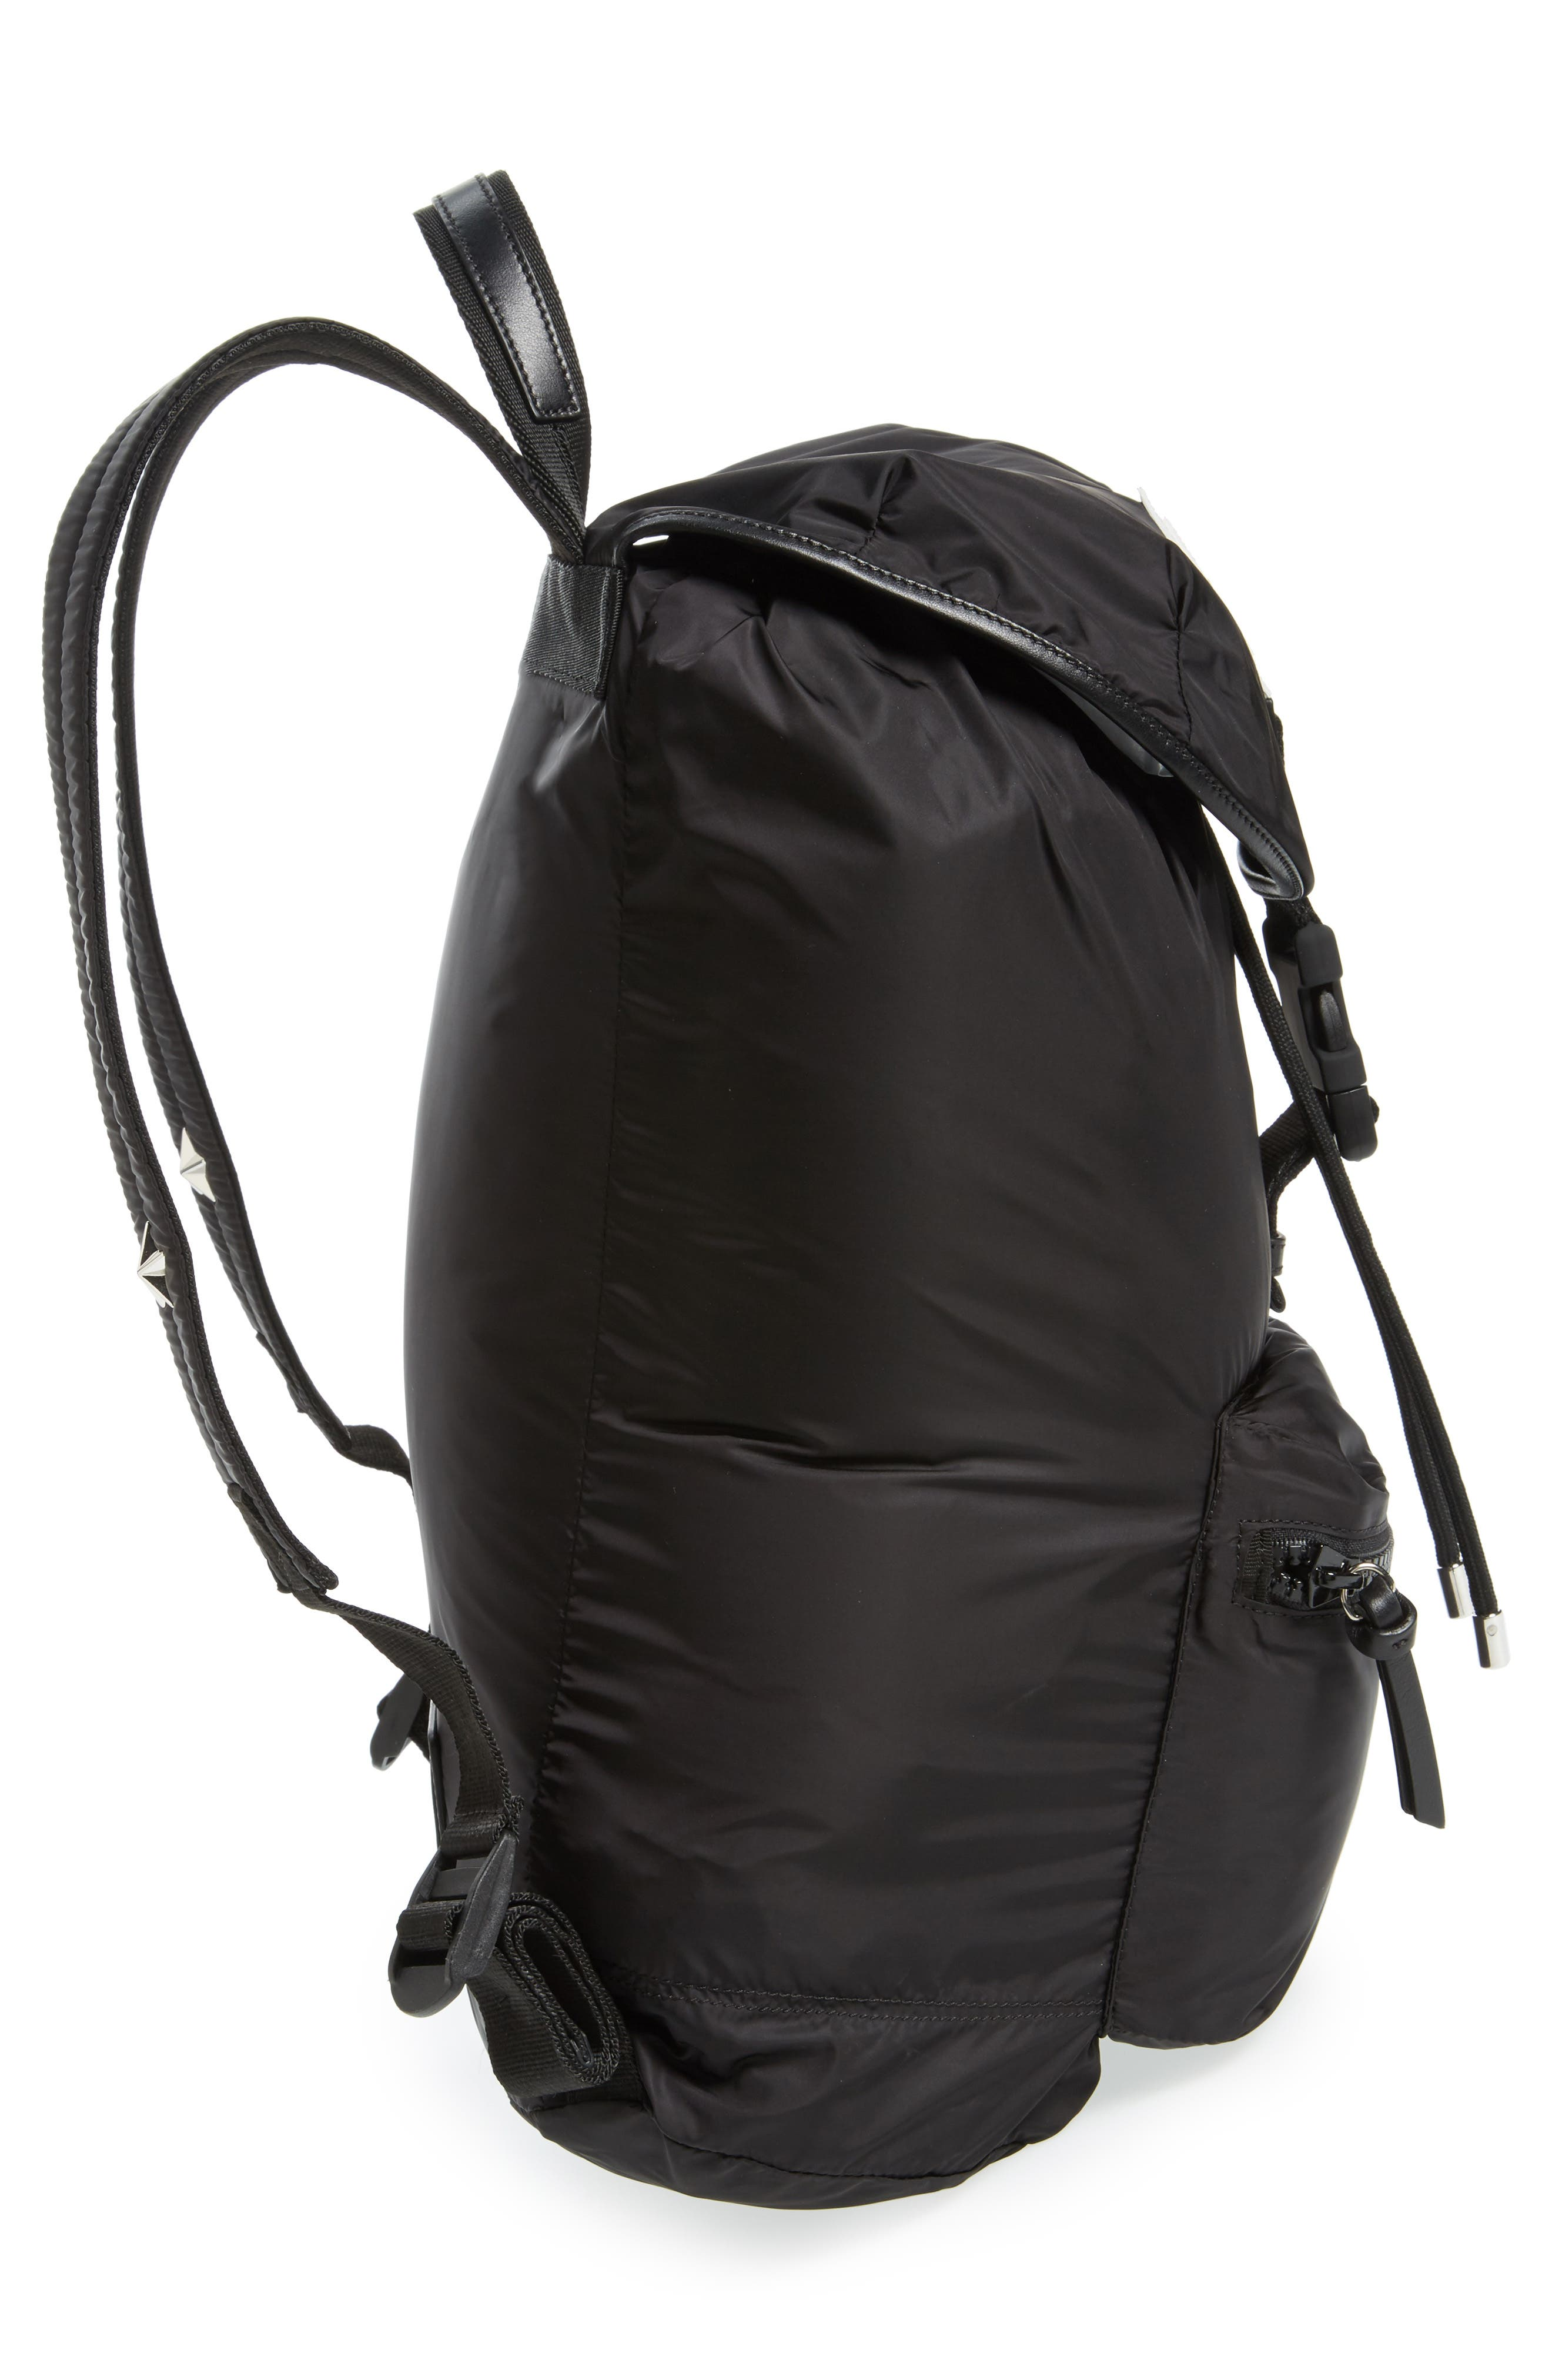 OBS Backpack,                             Alternate thumbnail 5, color,                             001